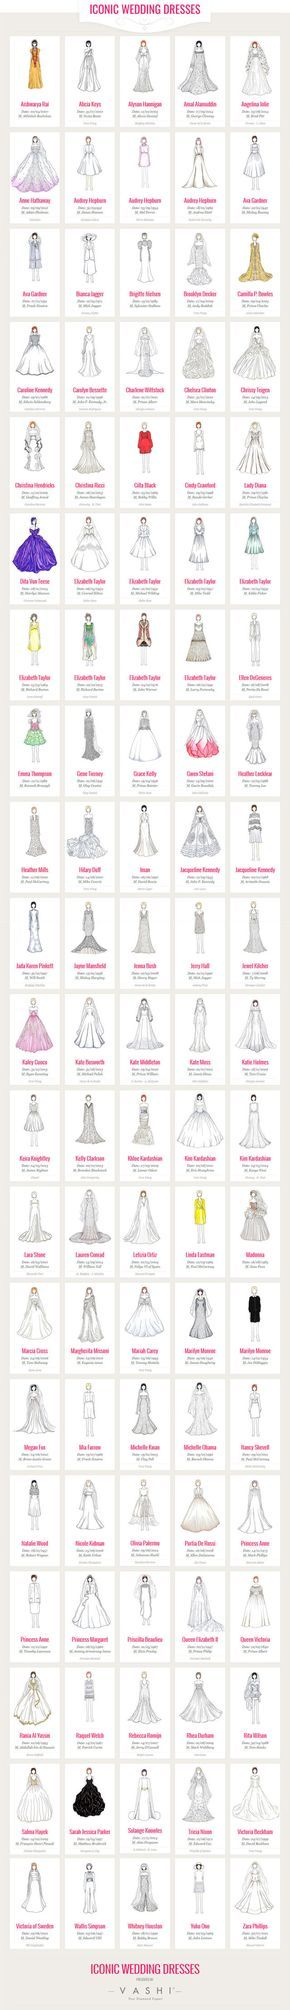 Are these the most iconic wedding dresses of all time? - Cosmopolitan.co.uk